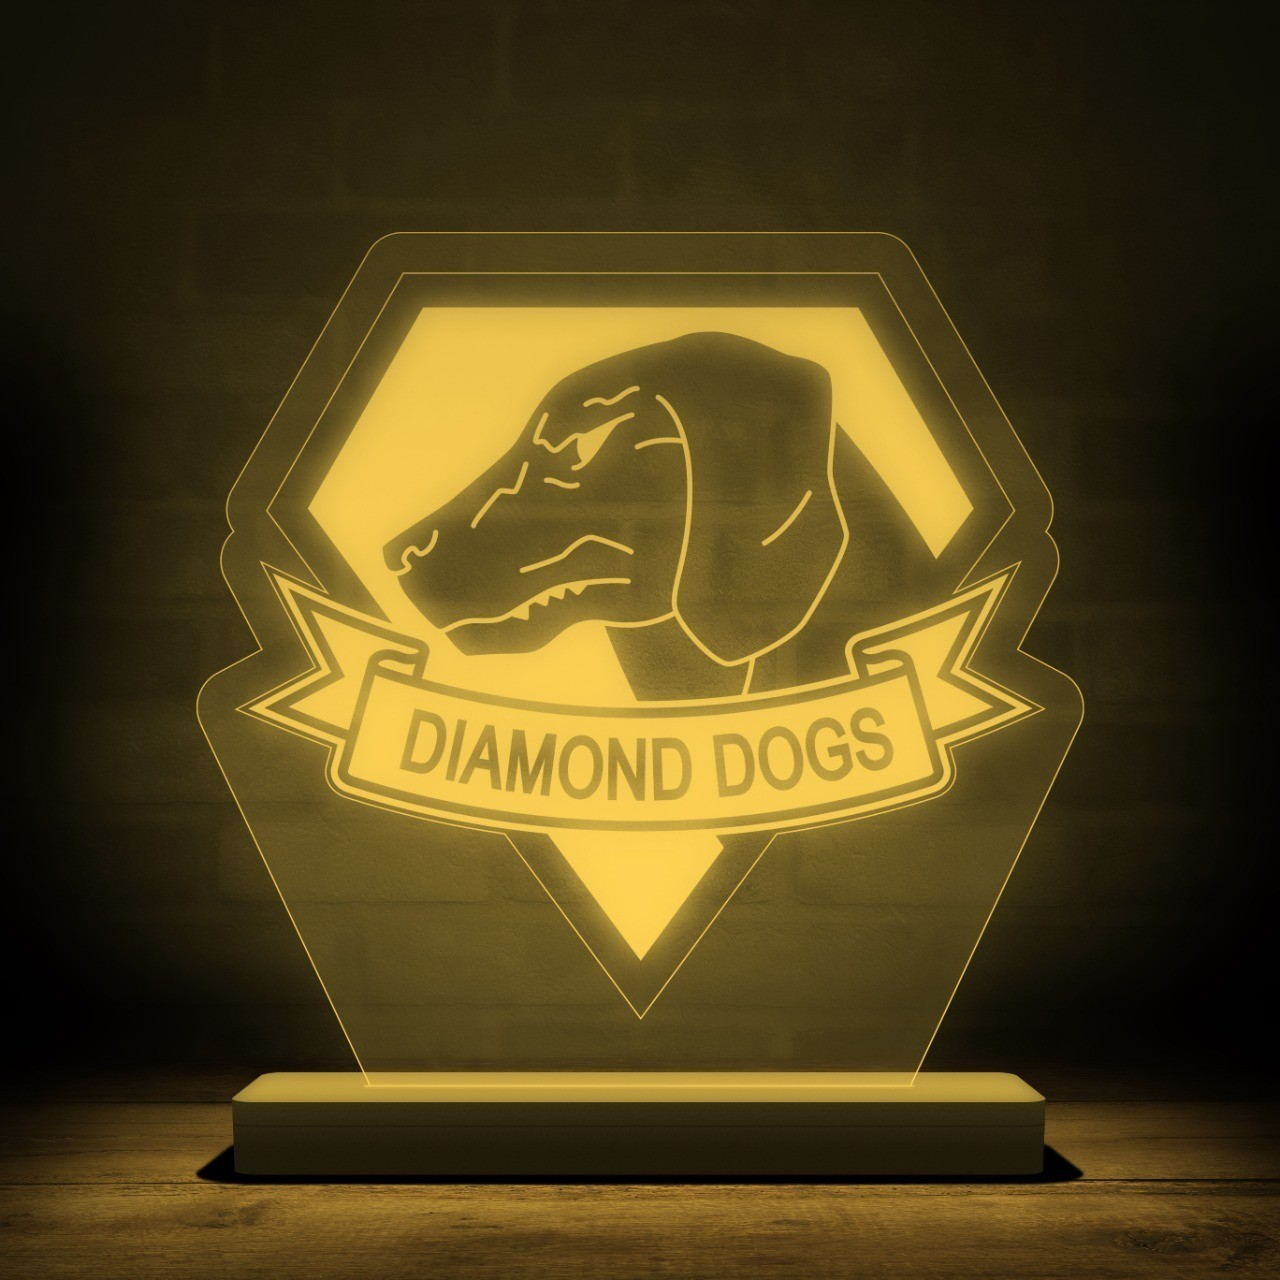 Luminária/Abajur Diamond Dogs - Metal Gear Solid - EV